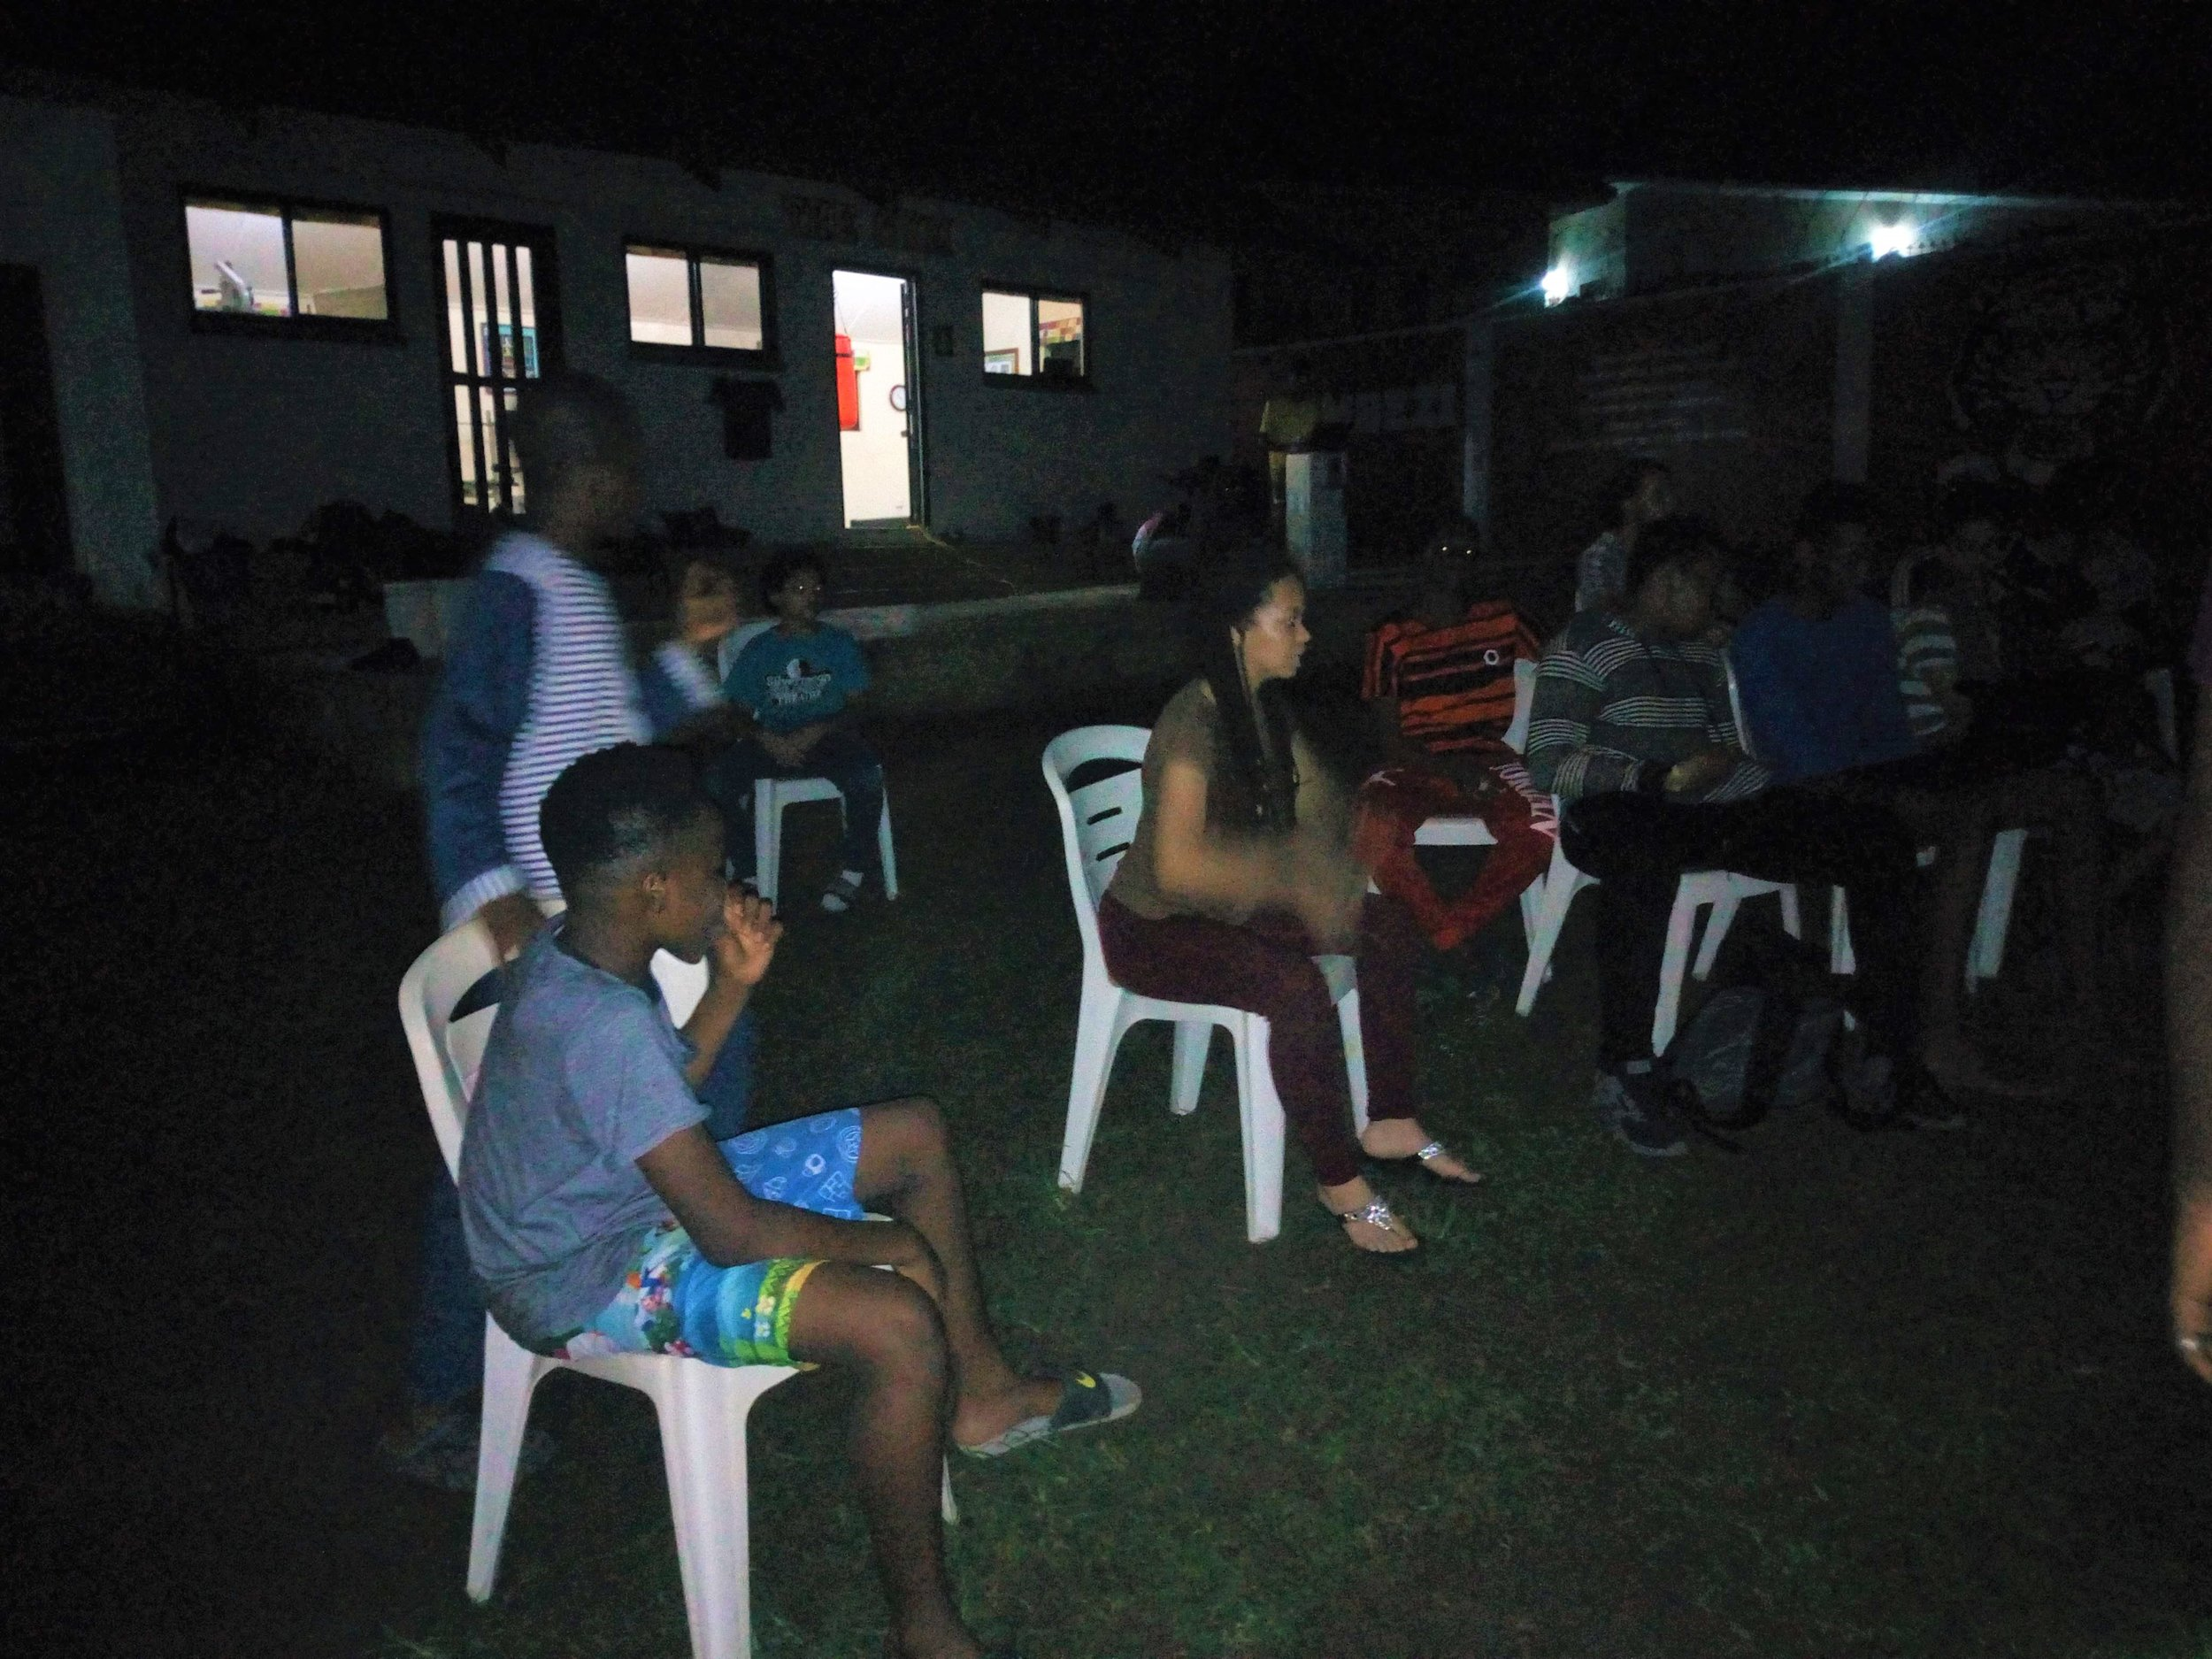 """After the Scavenger Hunt and Water Balloon Fight, students played """"Guess the Song"""" while sitting near the bonfire and eating roasted marshmallows!"""